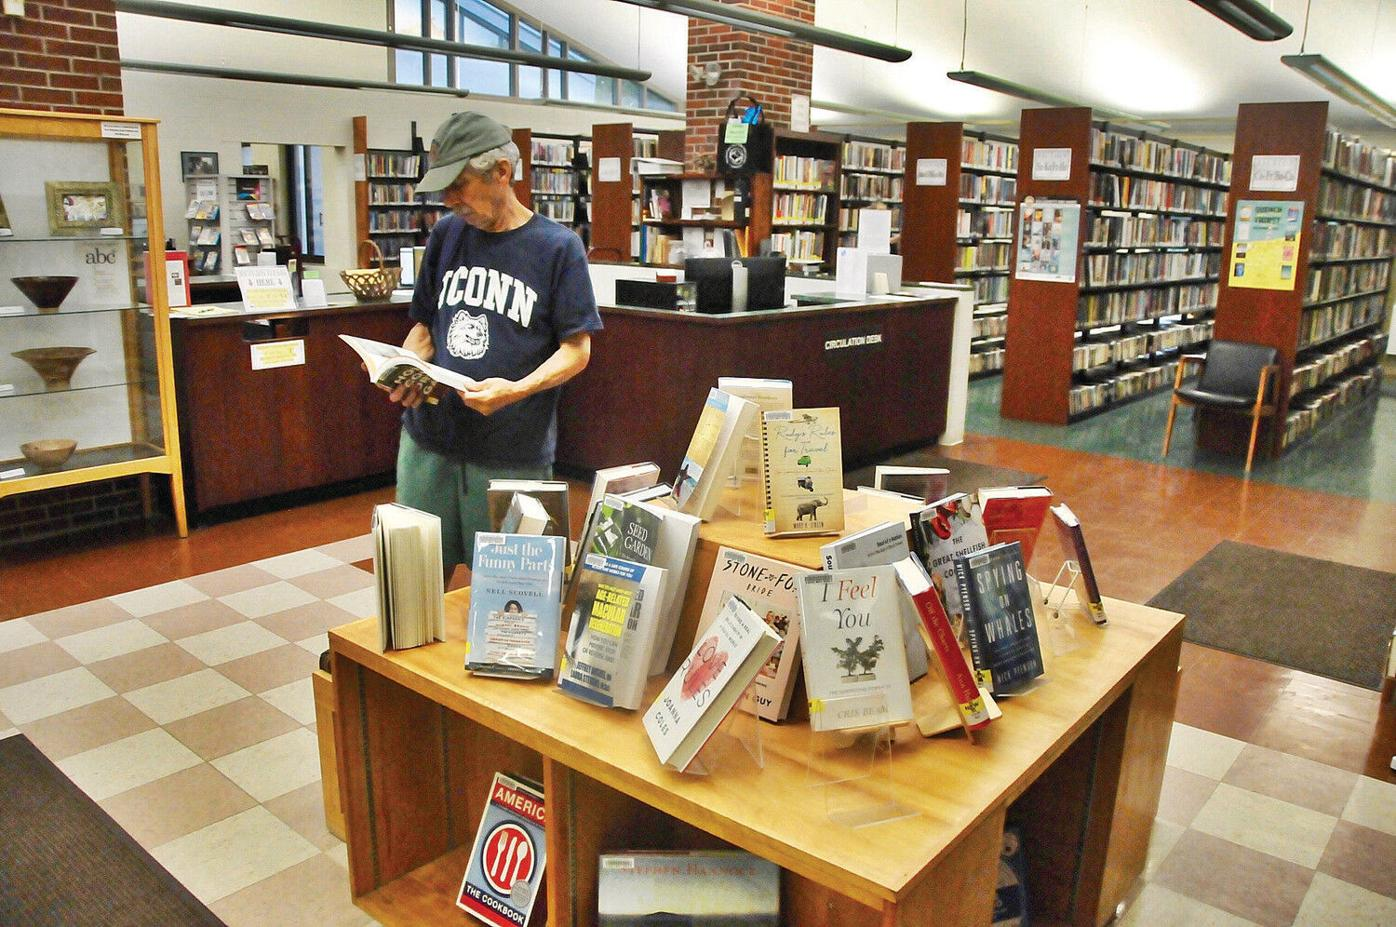 David & Joyce Milne Public Library in Williamstown readies $250K upgrade to lobby, circulation desk